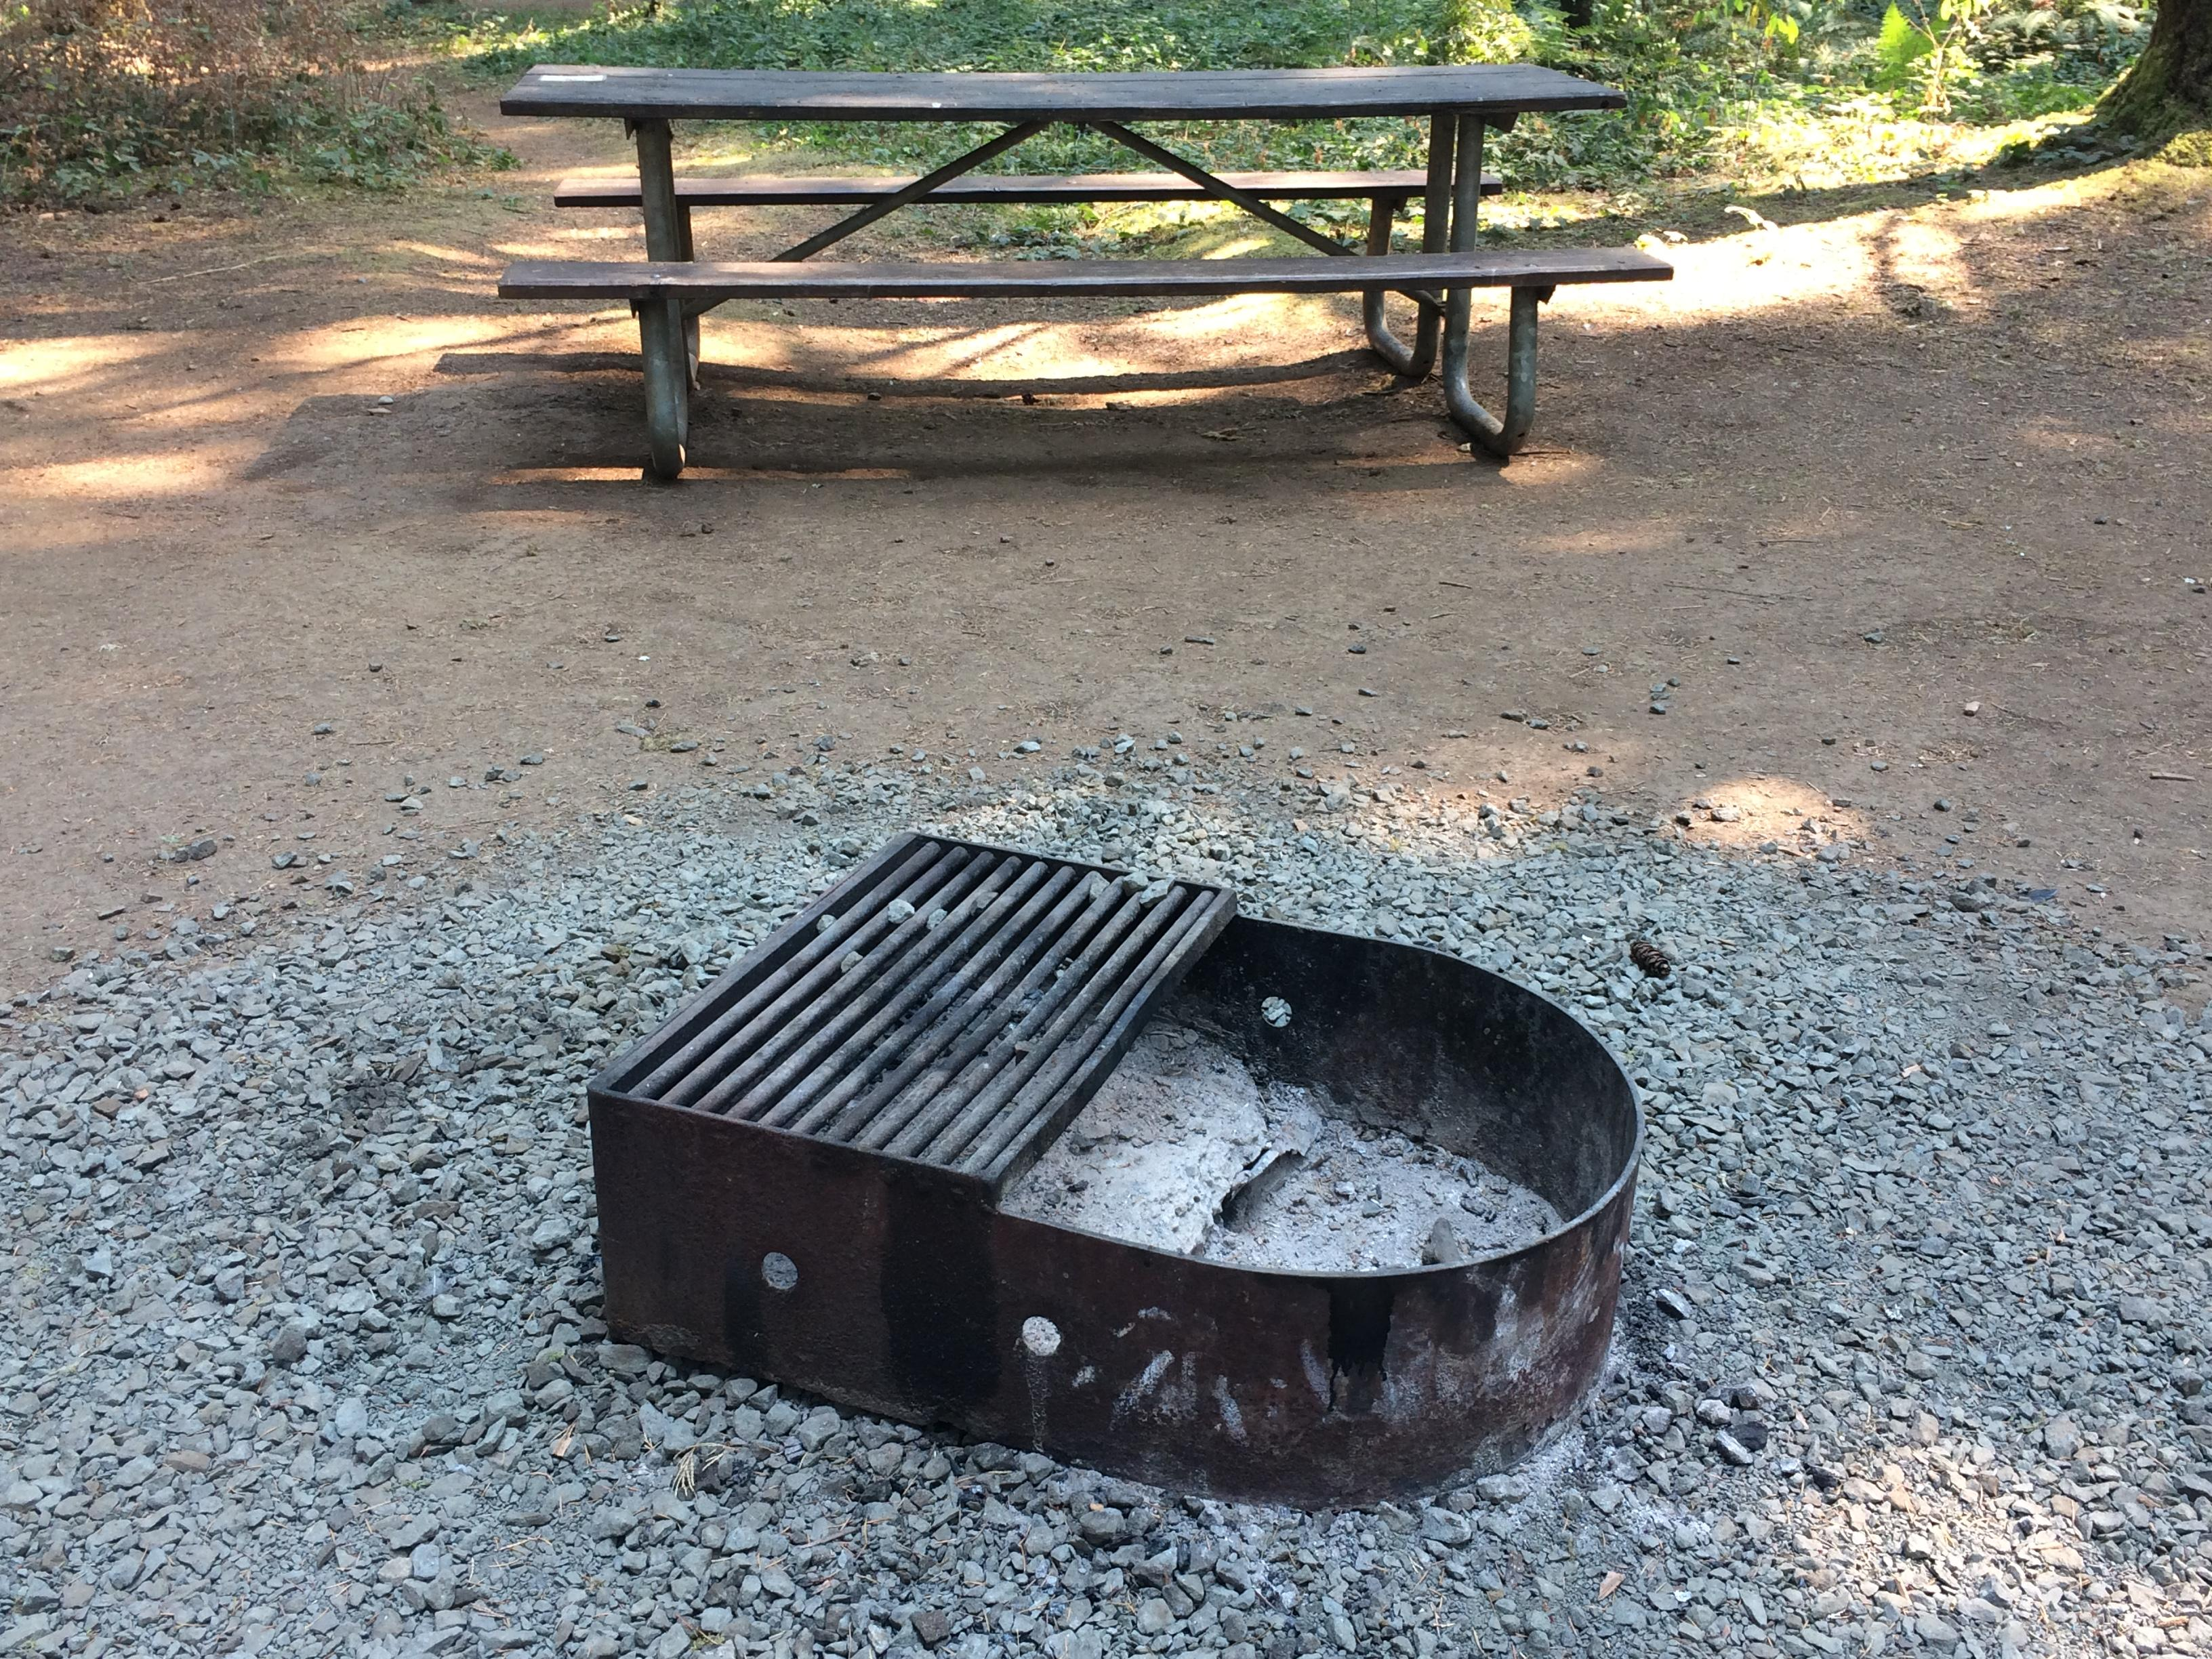 Campfires are restricted or banned on most national forest land in Western Oregon. Check with local land managers, and abide by local restrictions: firefighters already have enough on their hands without any new fires to suppress. (SBG)